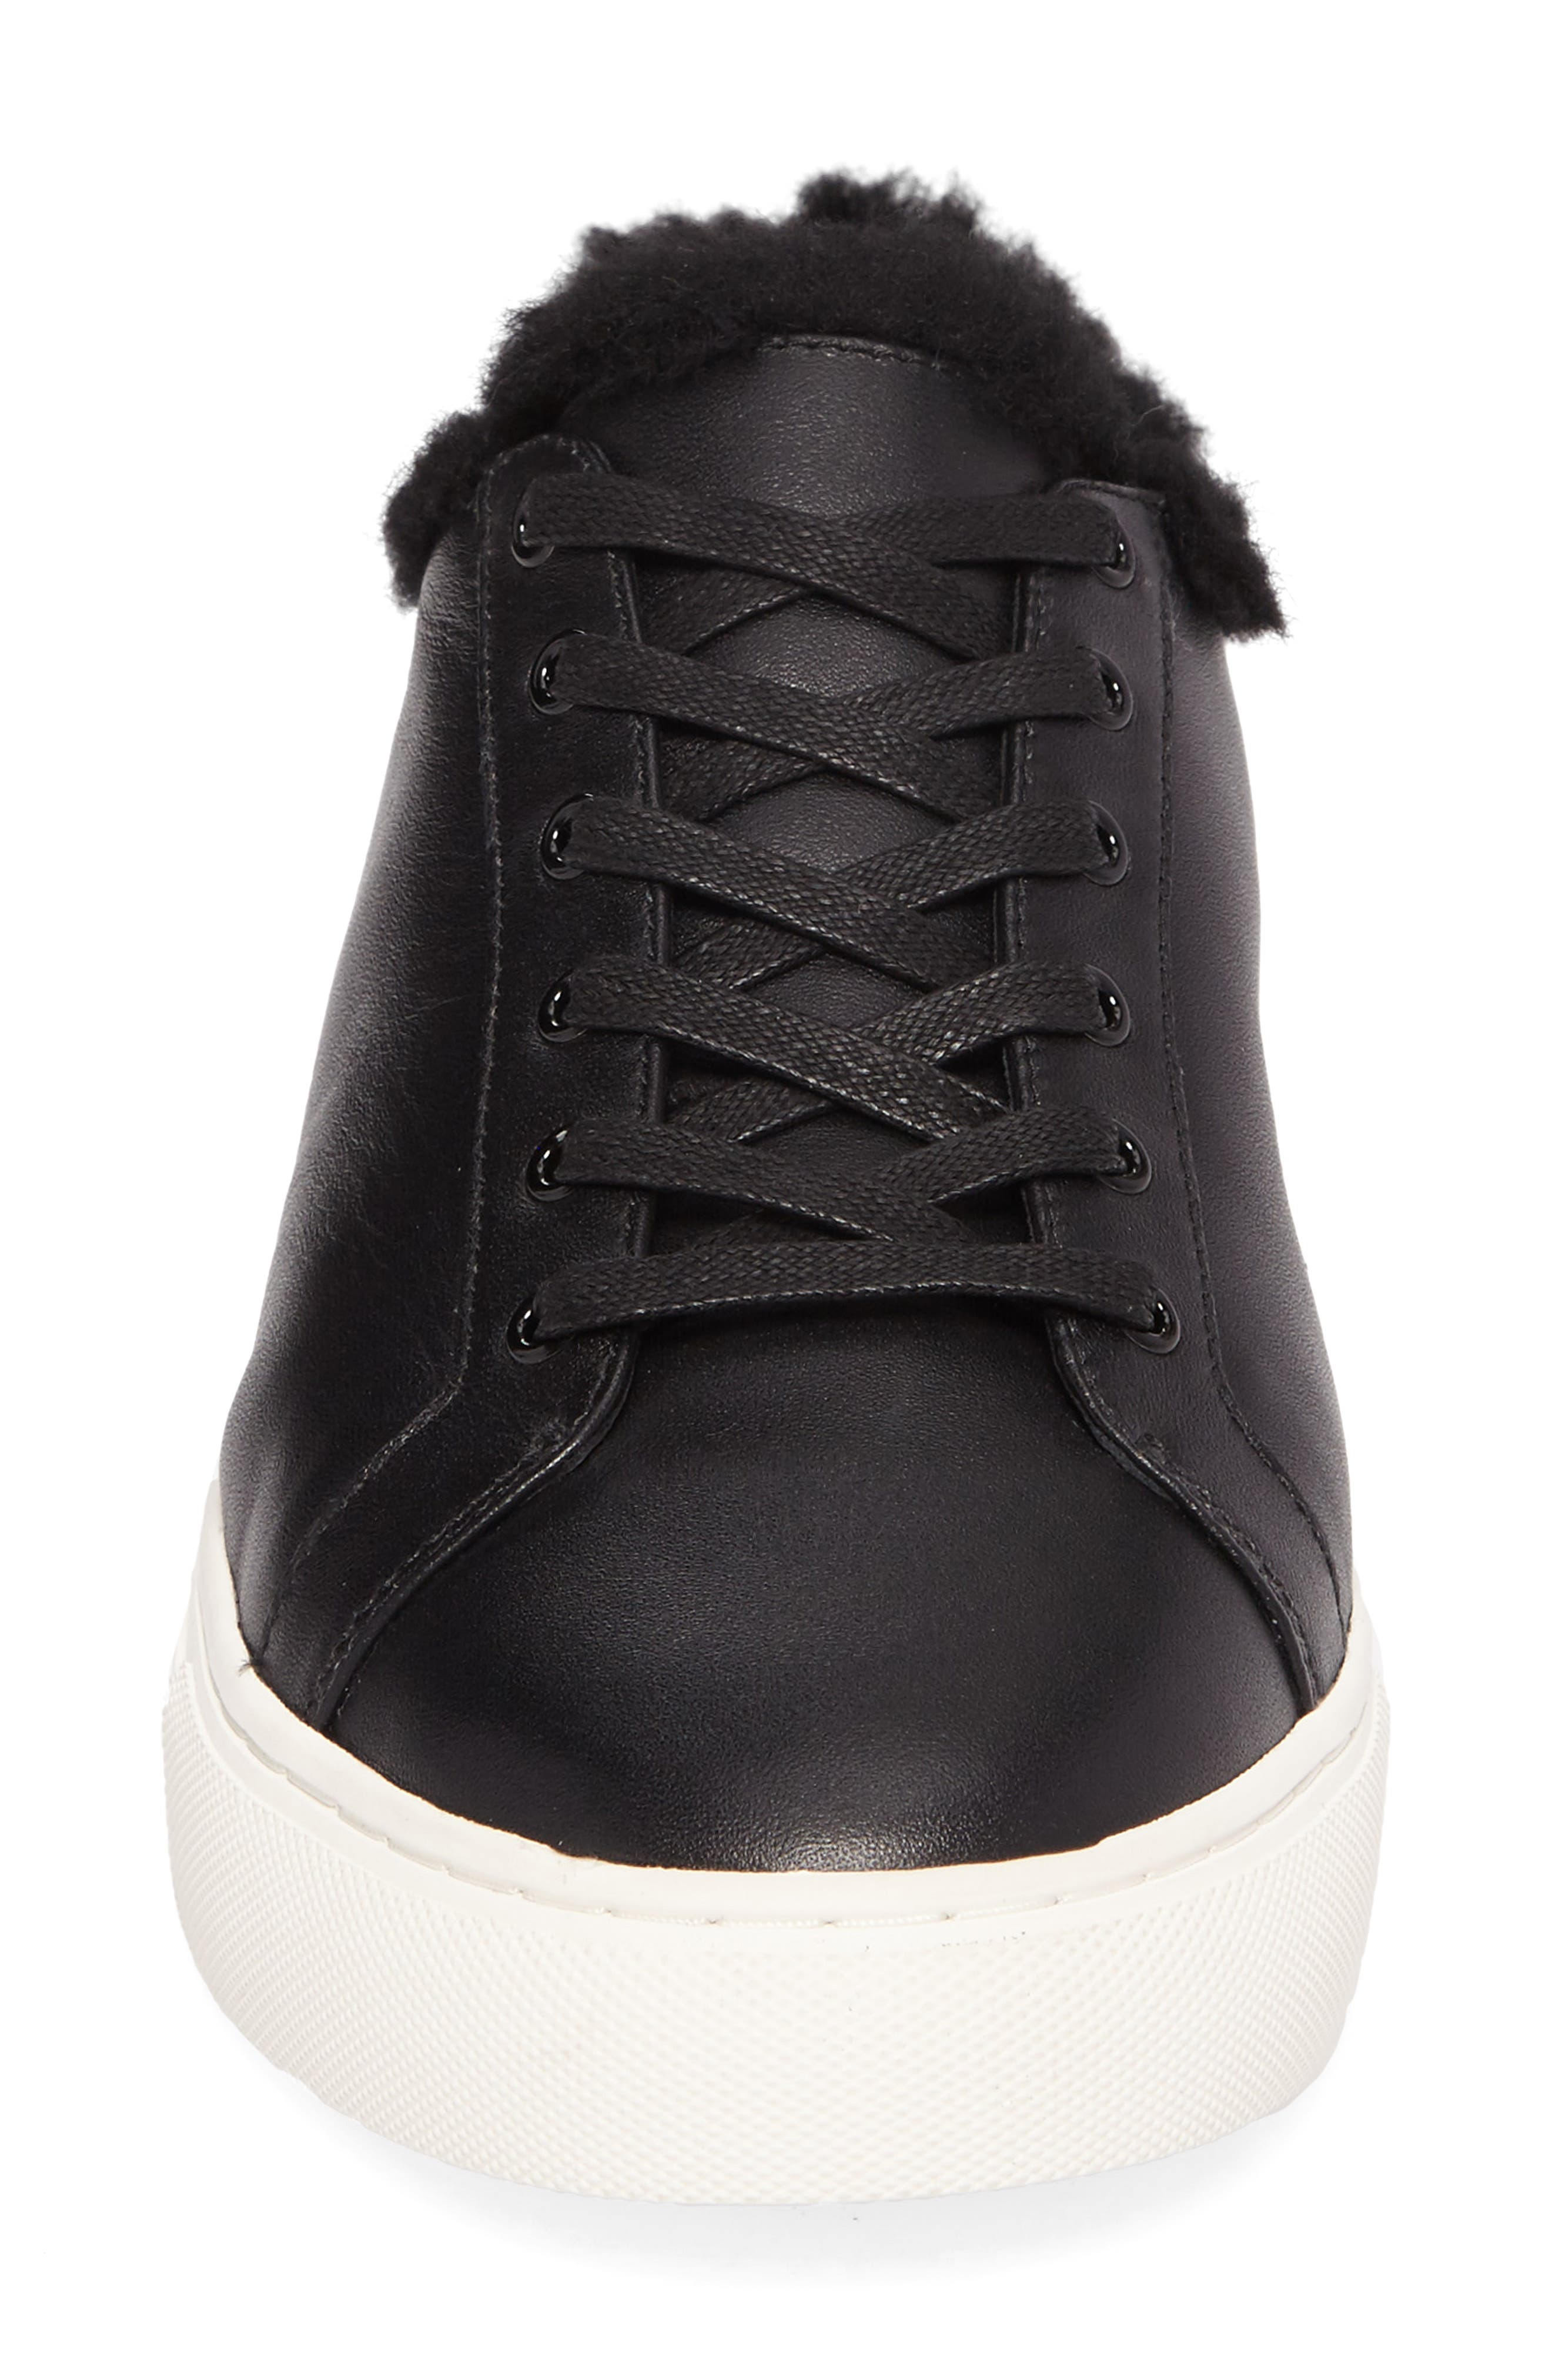 Lawrence Genuine Shearling Lined Sneaker,                             Alternate thumbnail 4, color,                             001